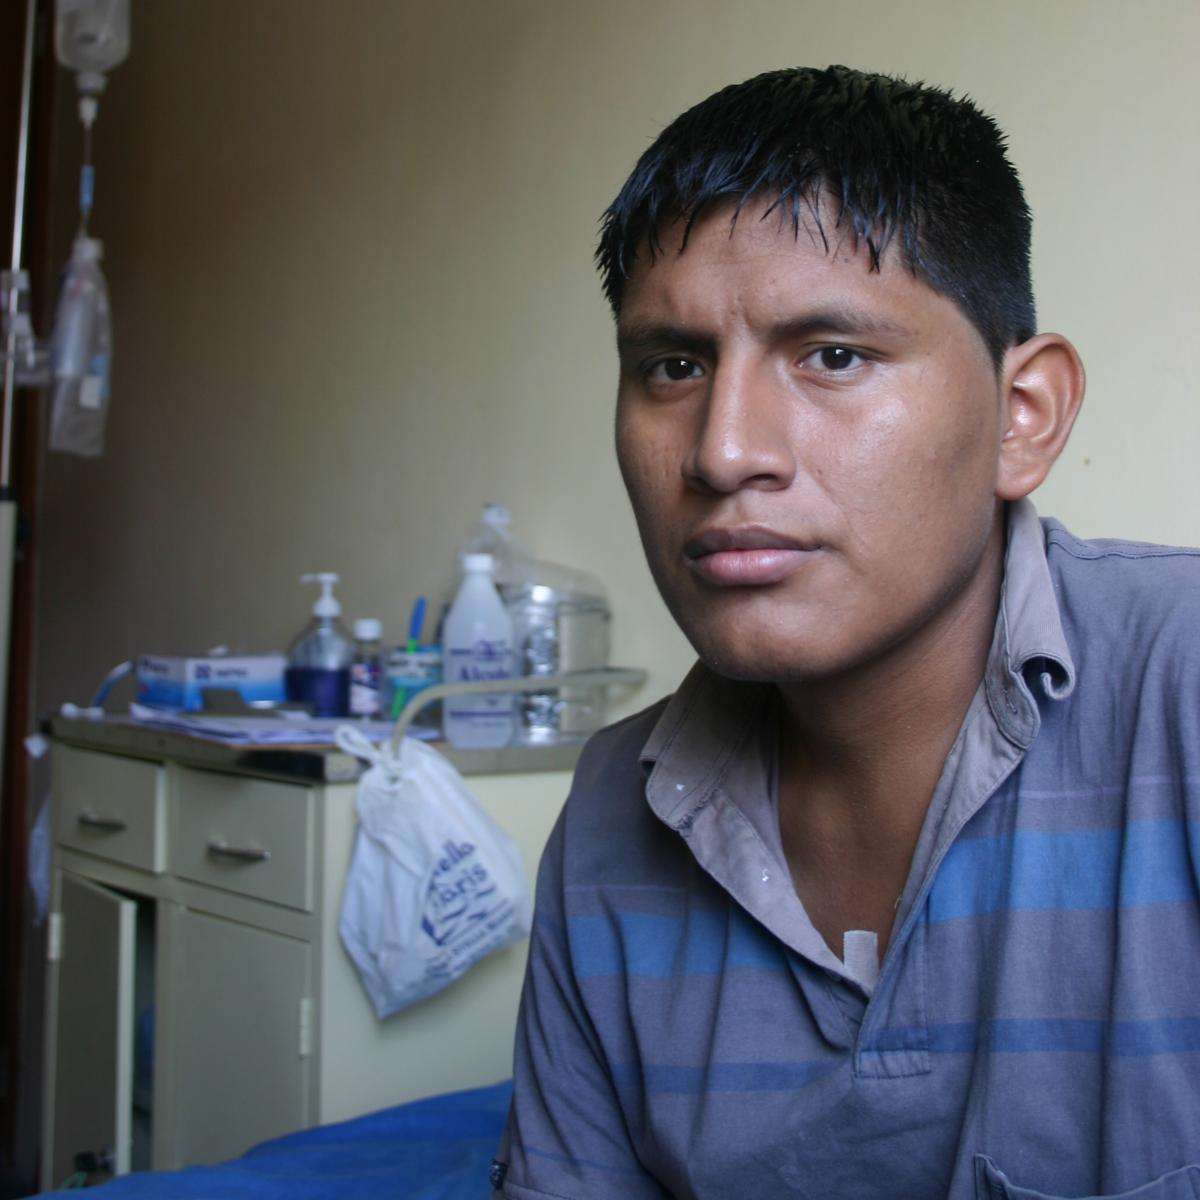 Luis Henry Robles Higinio, 19, has XDR-TB. His right lung was removed due to the extent of the disease, and he had a port implanted in his chest for his twice-daily drip of TB drugs. With the end of IV treatment just two weeks away, he's in a positive fra